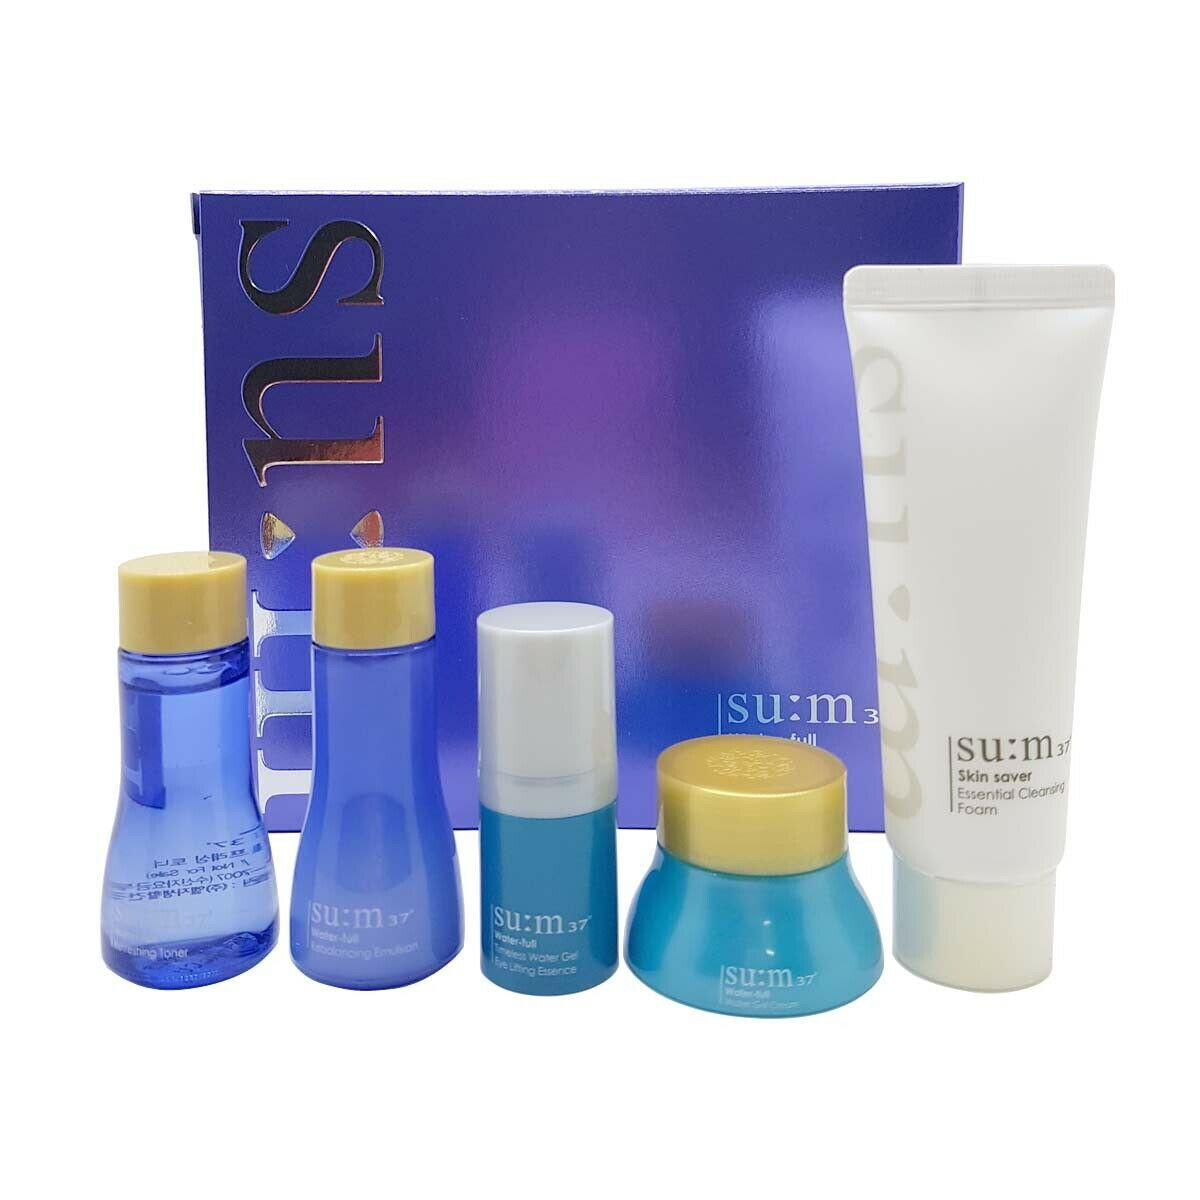 SU:M37° Water Full Special Gift Set (5 Items)